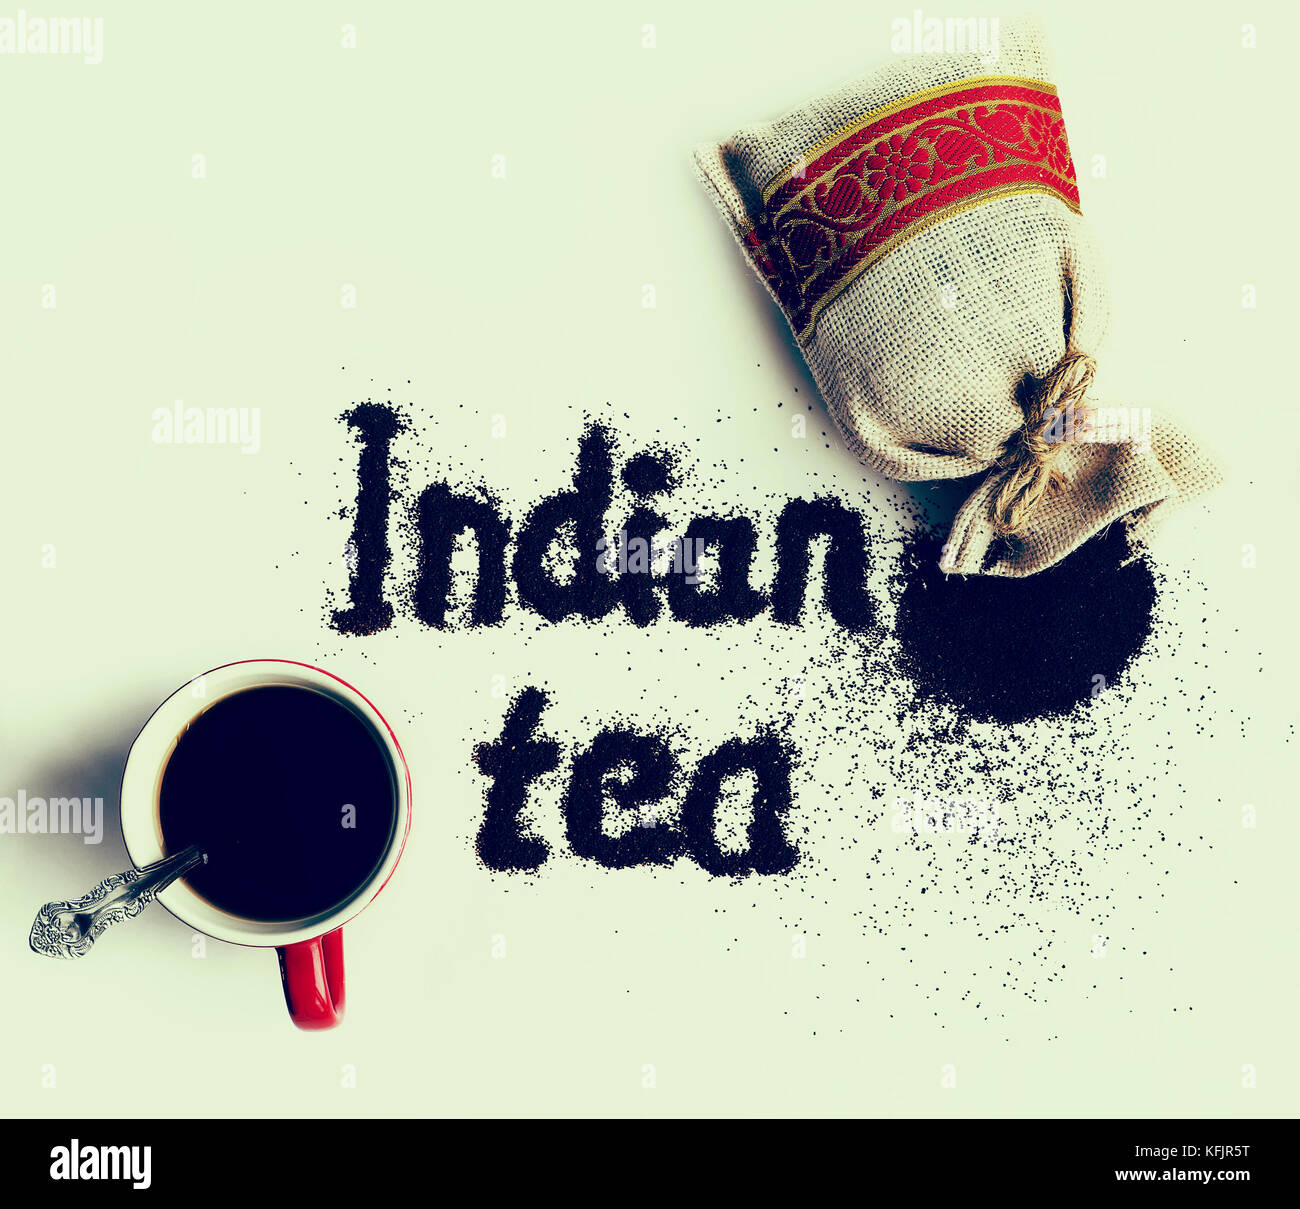 Inscription Indian Tea Next To The Mug And Packaging Of Granular Loose Black